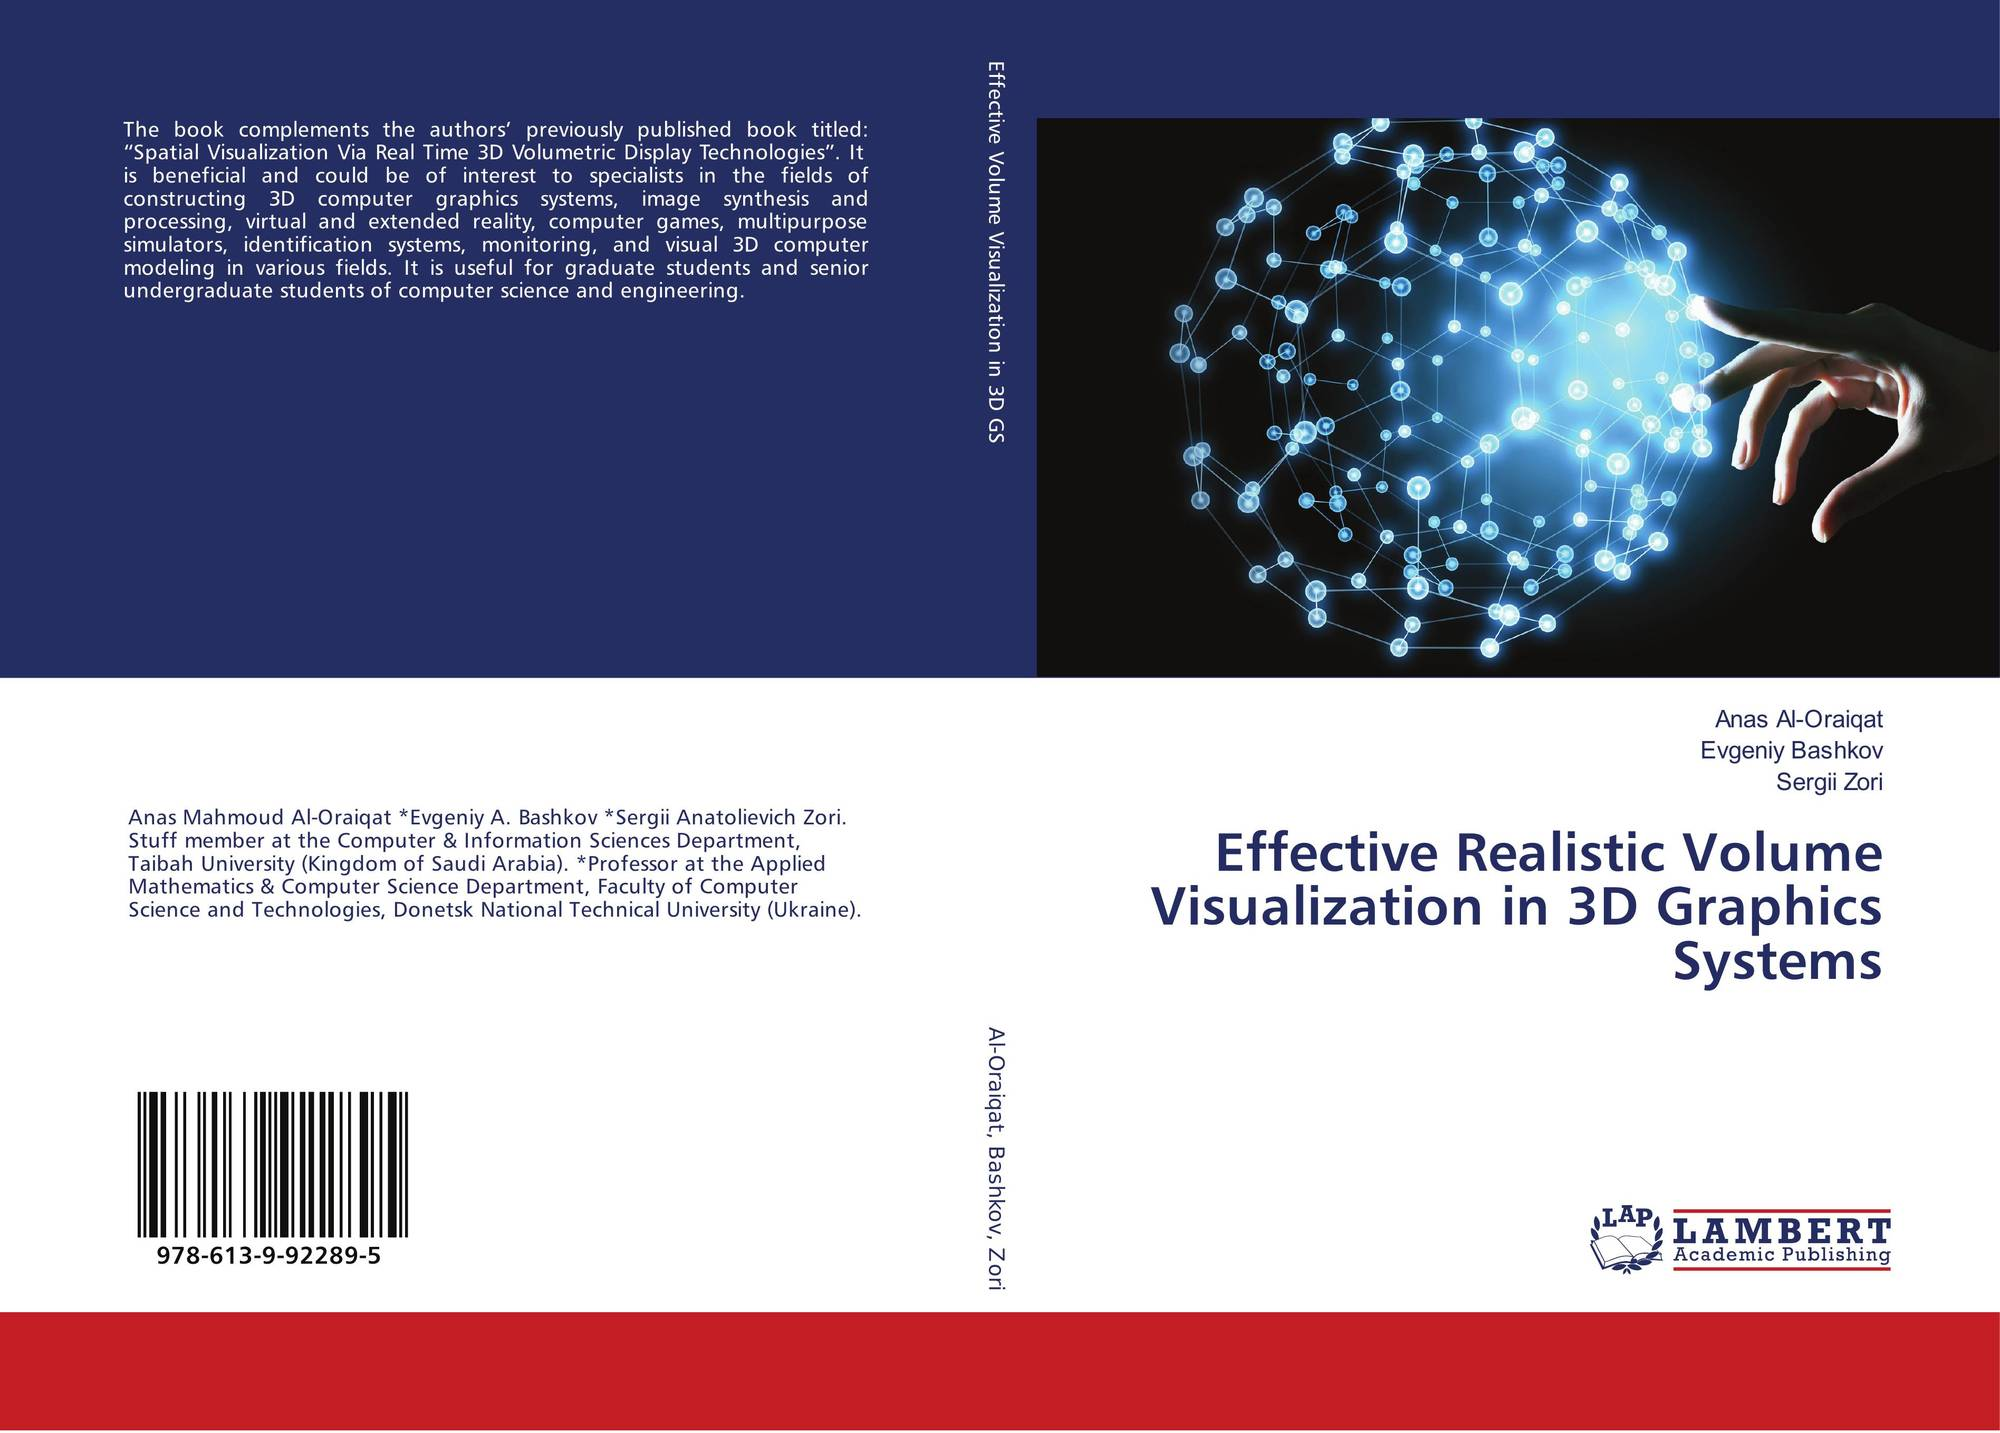 Effective Realistic Volume Visualization in 3D Graphics Systems, 978